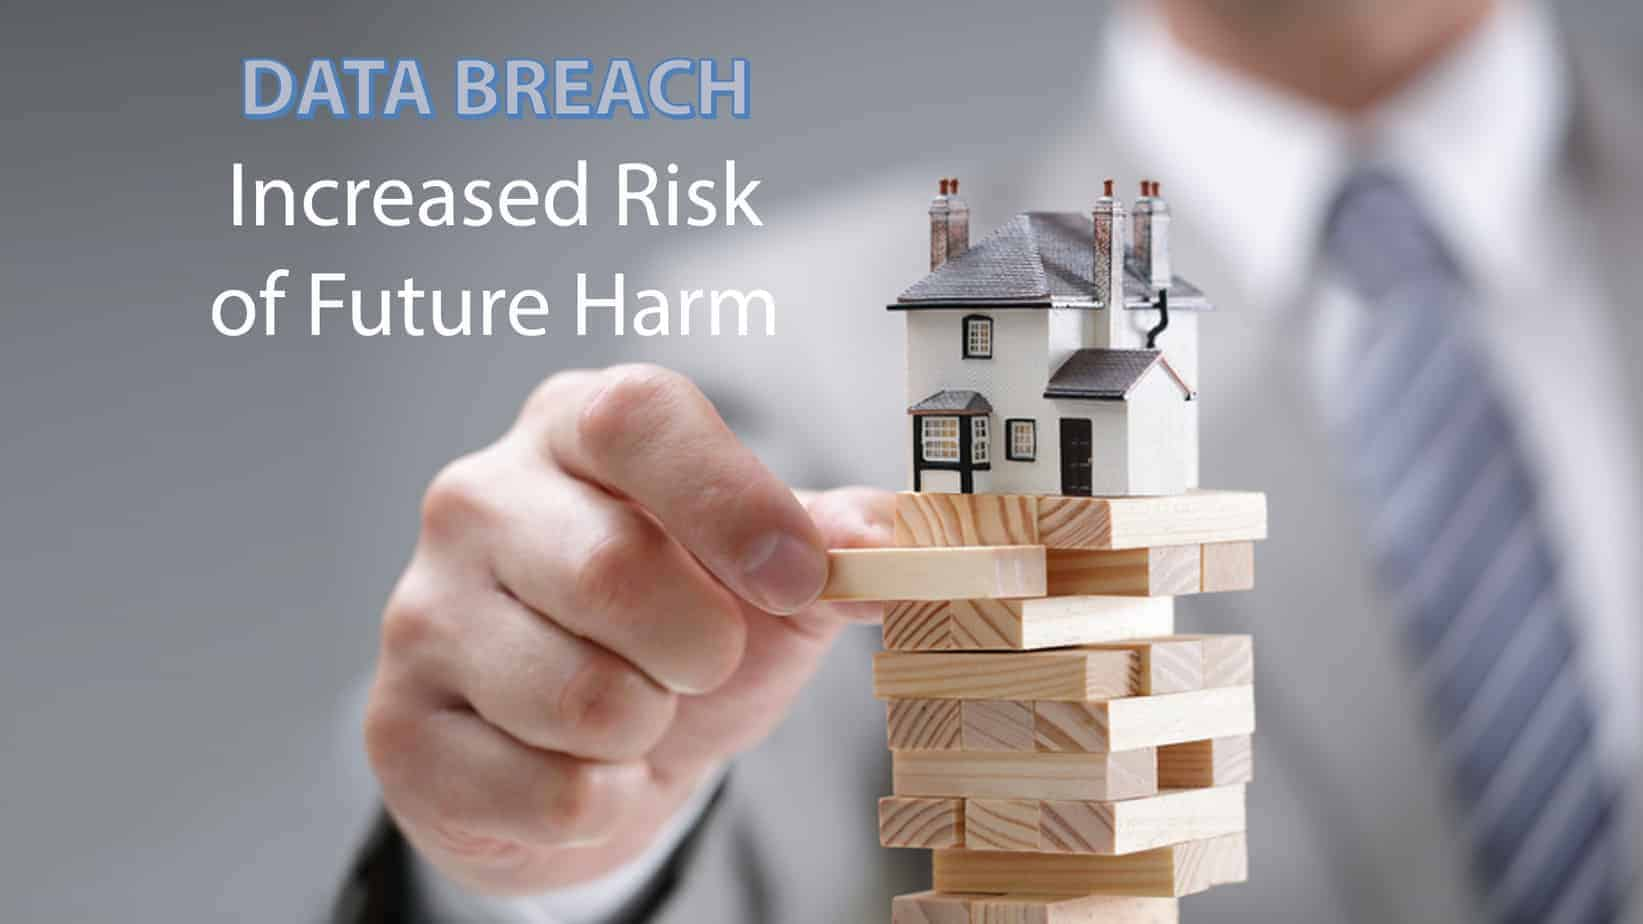 Data Breach Harm and Standing: Increased Risk of Future Harm